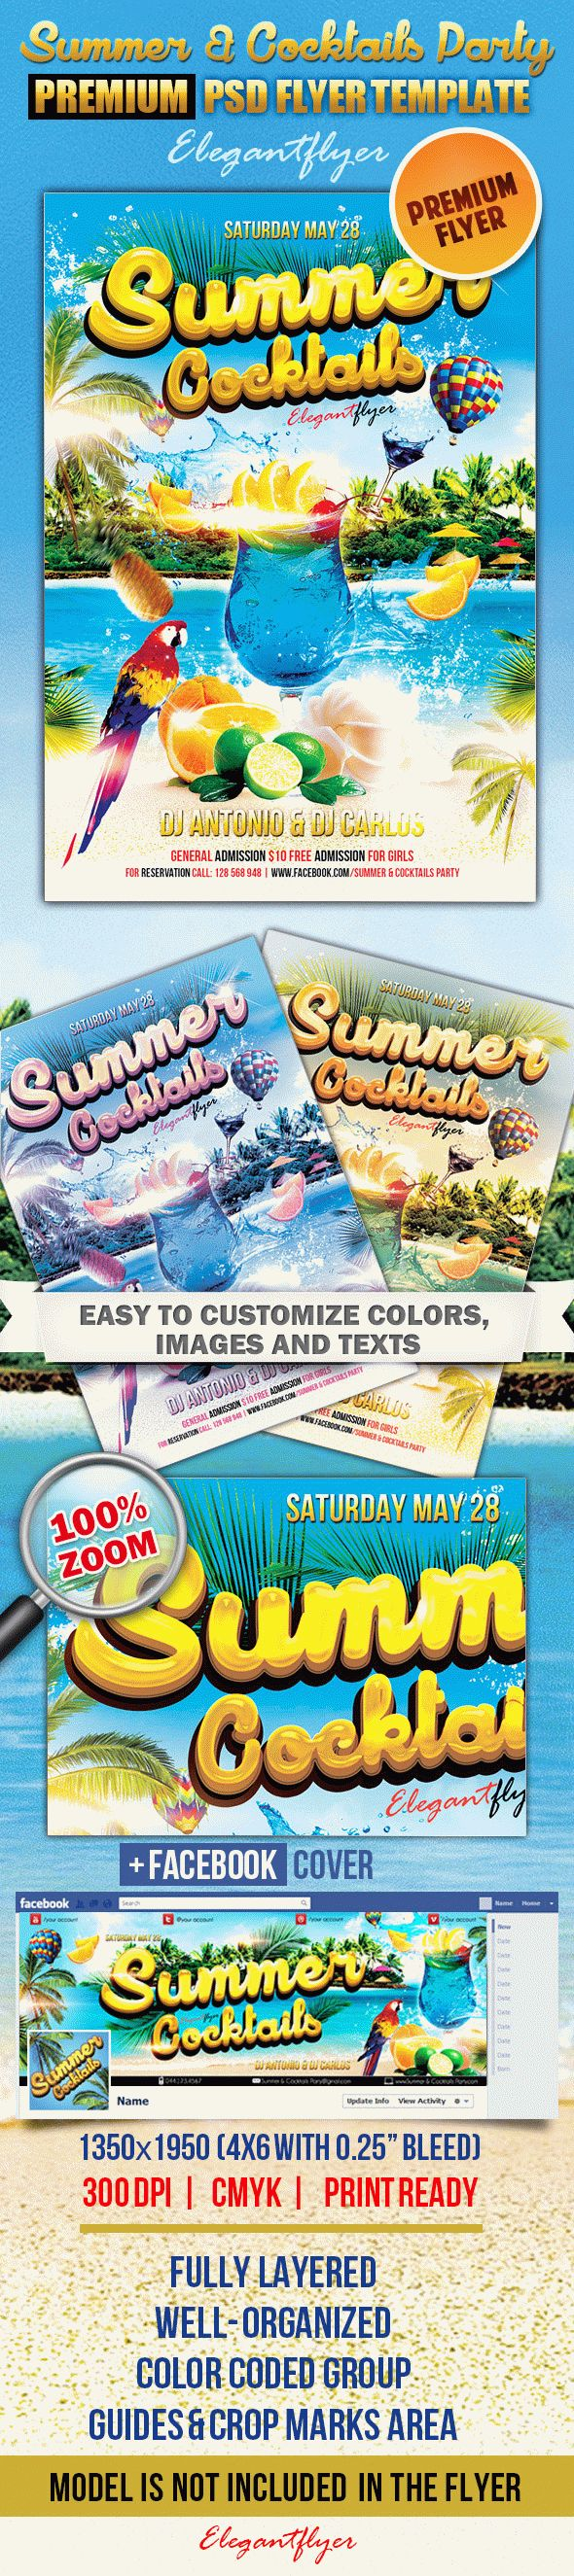 Summer Cocktails Party – Flyer PSD Template